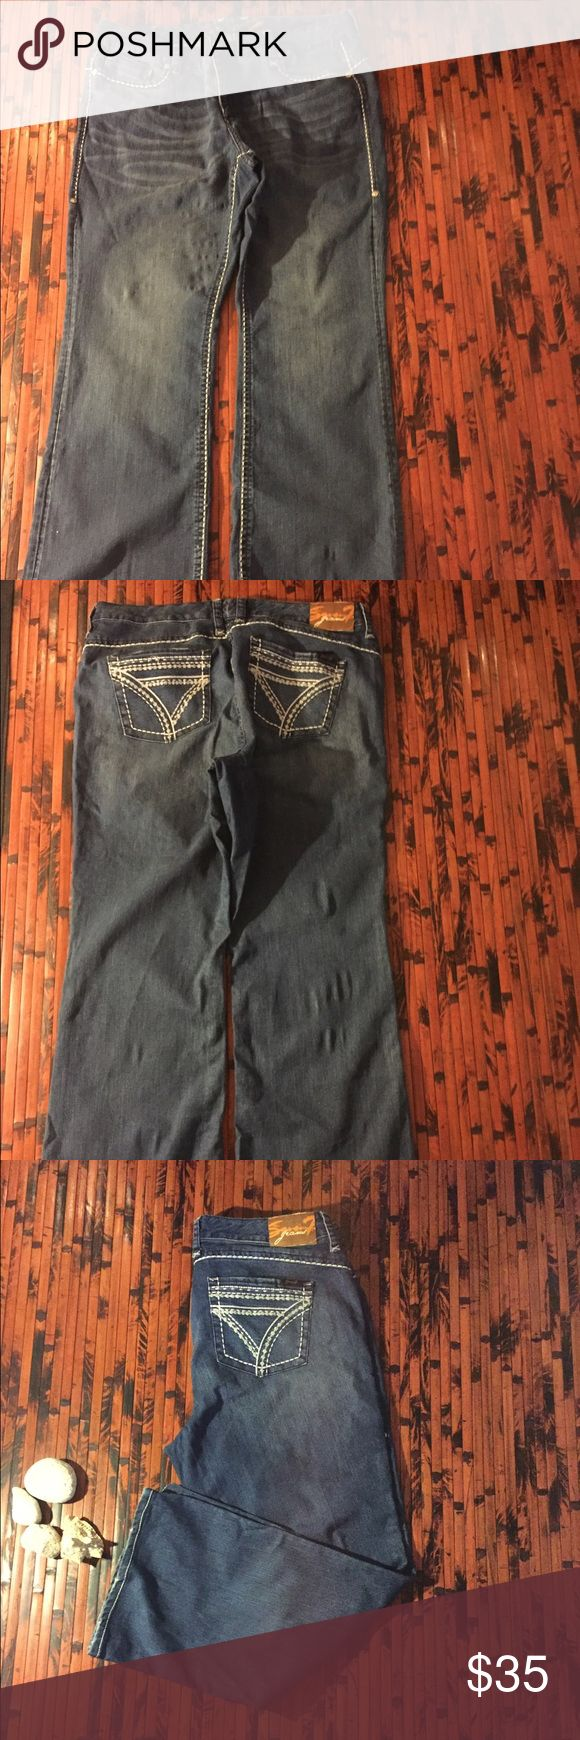 Seven Plus Size Jeans Plus size, size 20, in good condition, accent stitching.  44 inches long, inseam is 30 inches. Seven7 Jeans Boot Cut